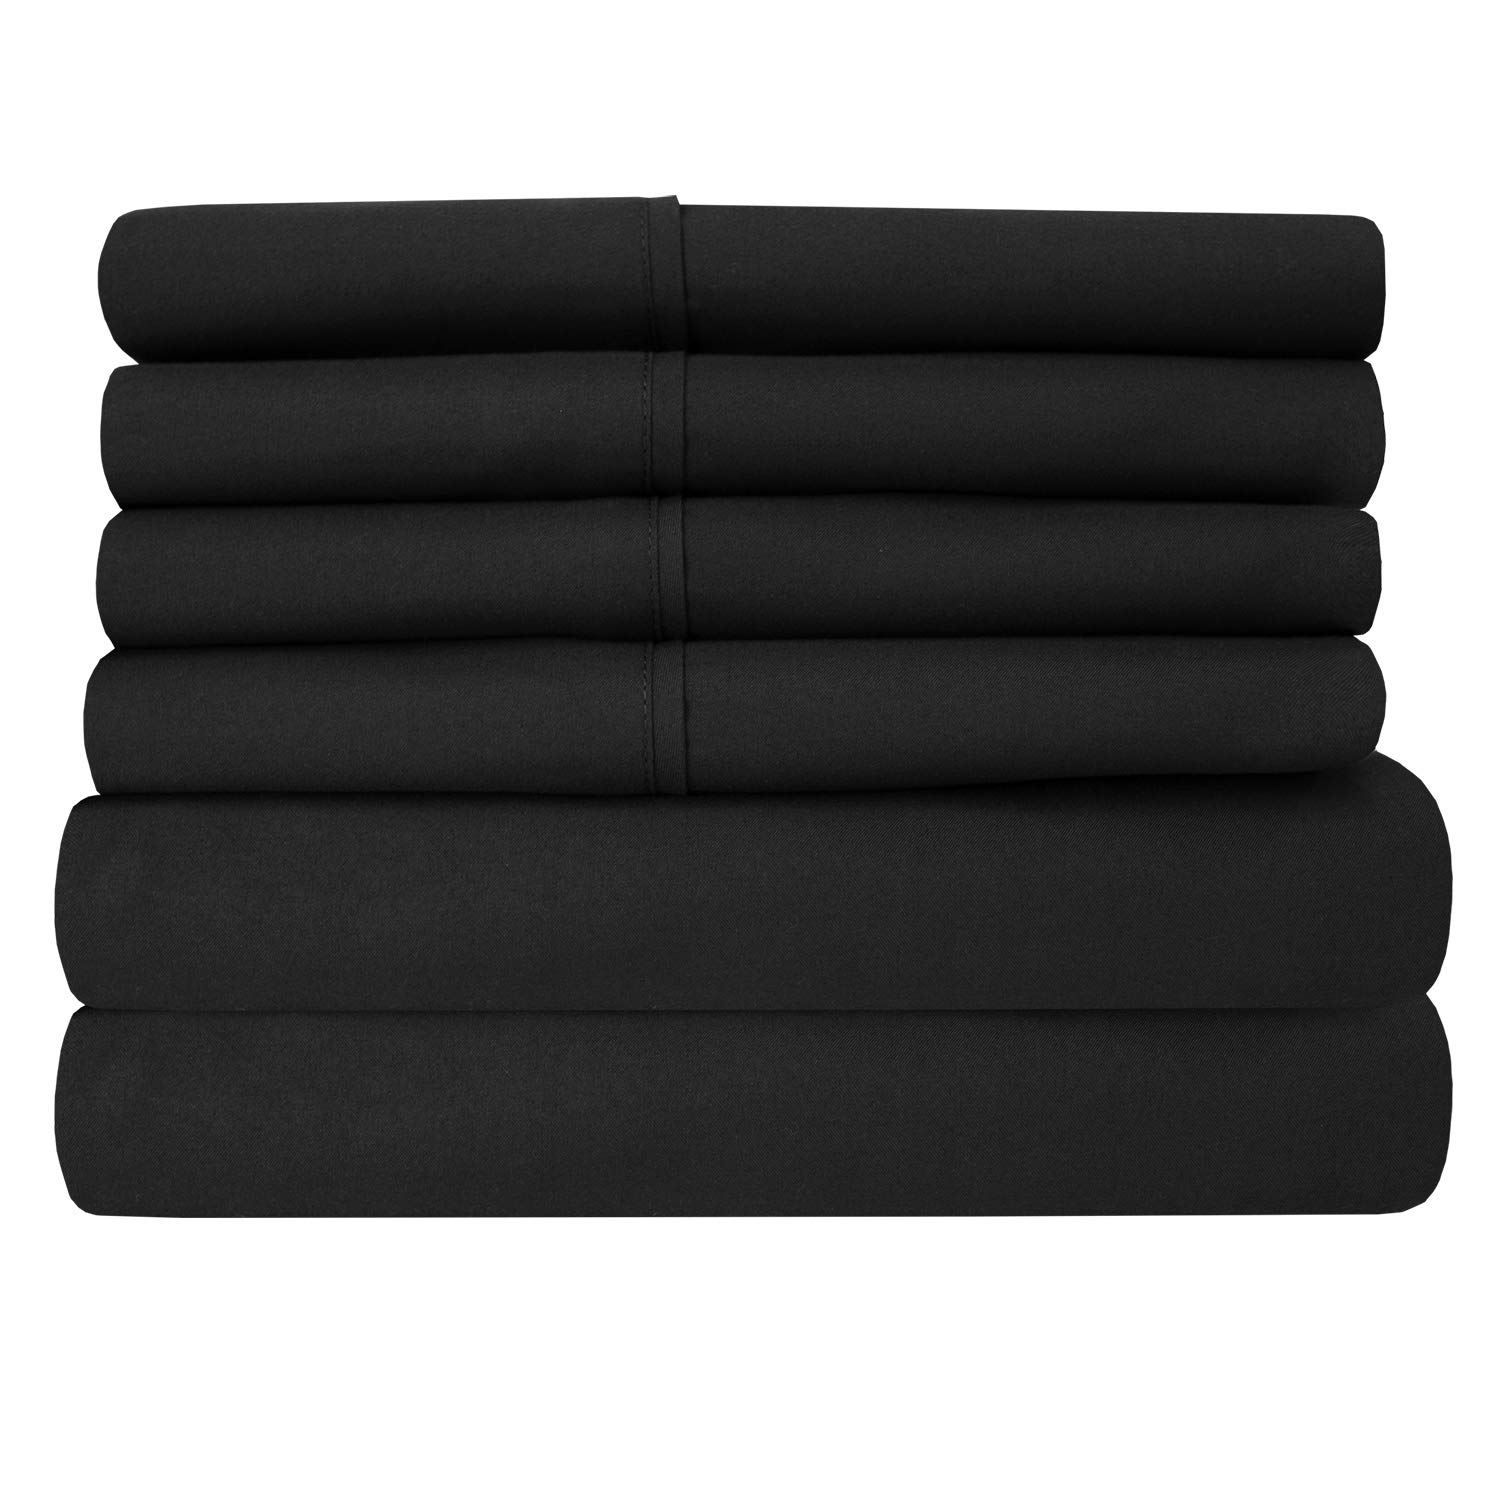 Full Size Bed Sheets - 6 Piece 1500 Thread Count Fine Brushed Microfiber Deep Pocket Full Sheet Set Bedding - 2 Extra Pillow Cases, Great Value, Full, Black